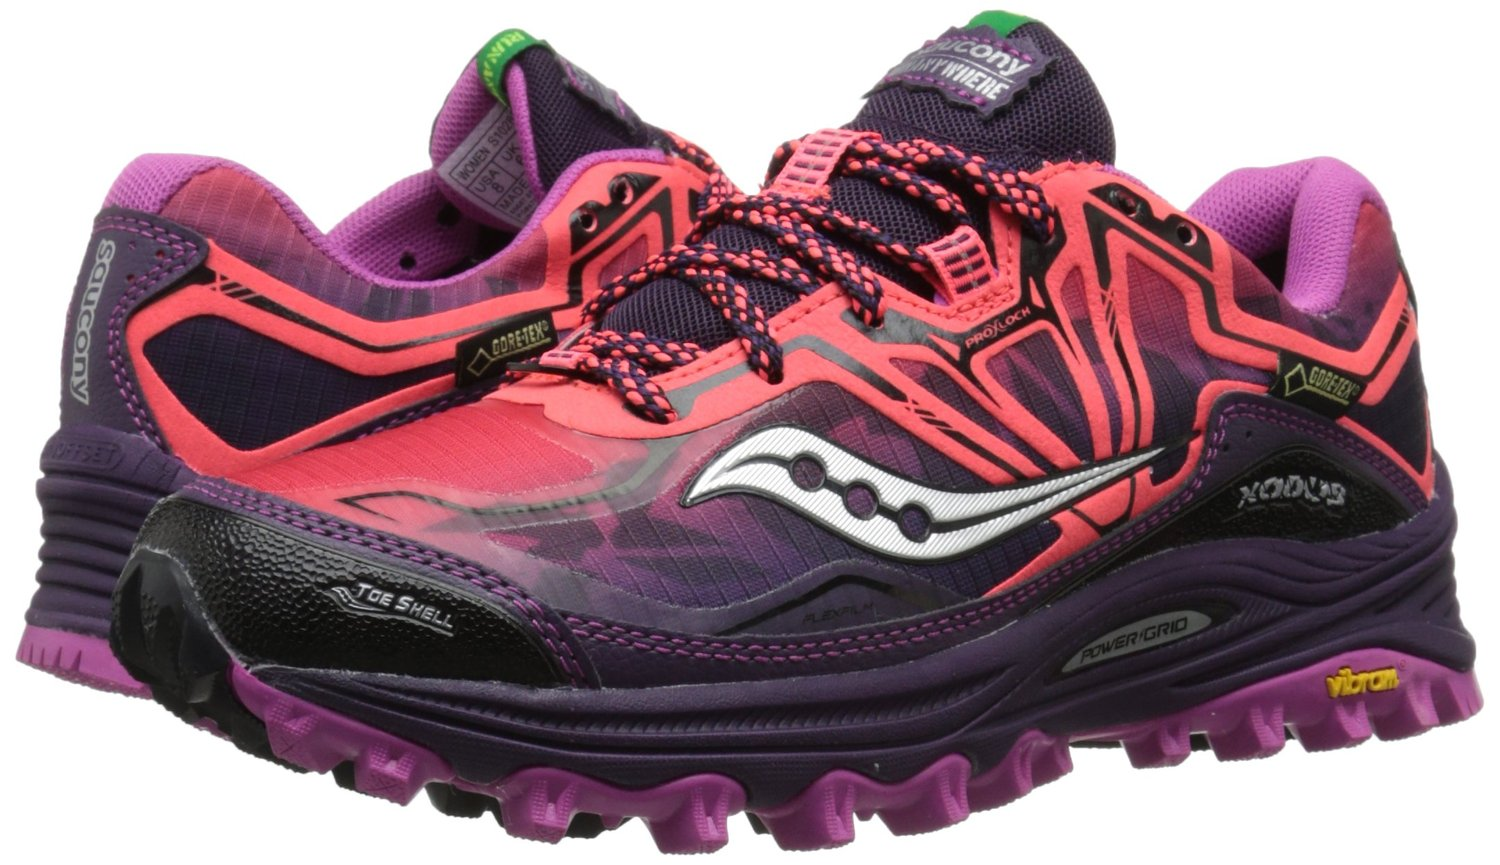 Saucony Women's Xodus 6.0 Gtx Trail Running Shoes